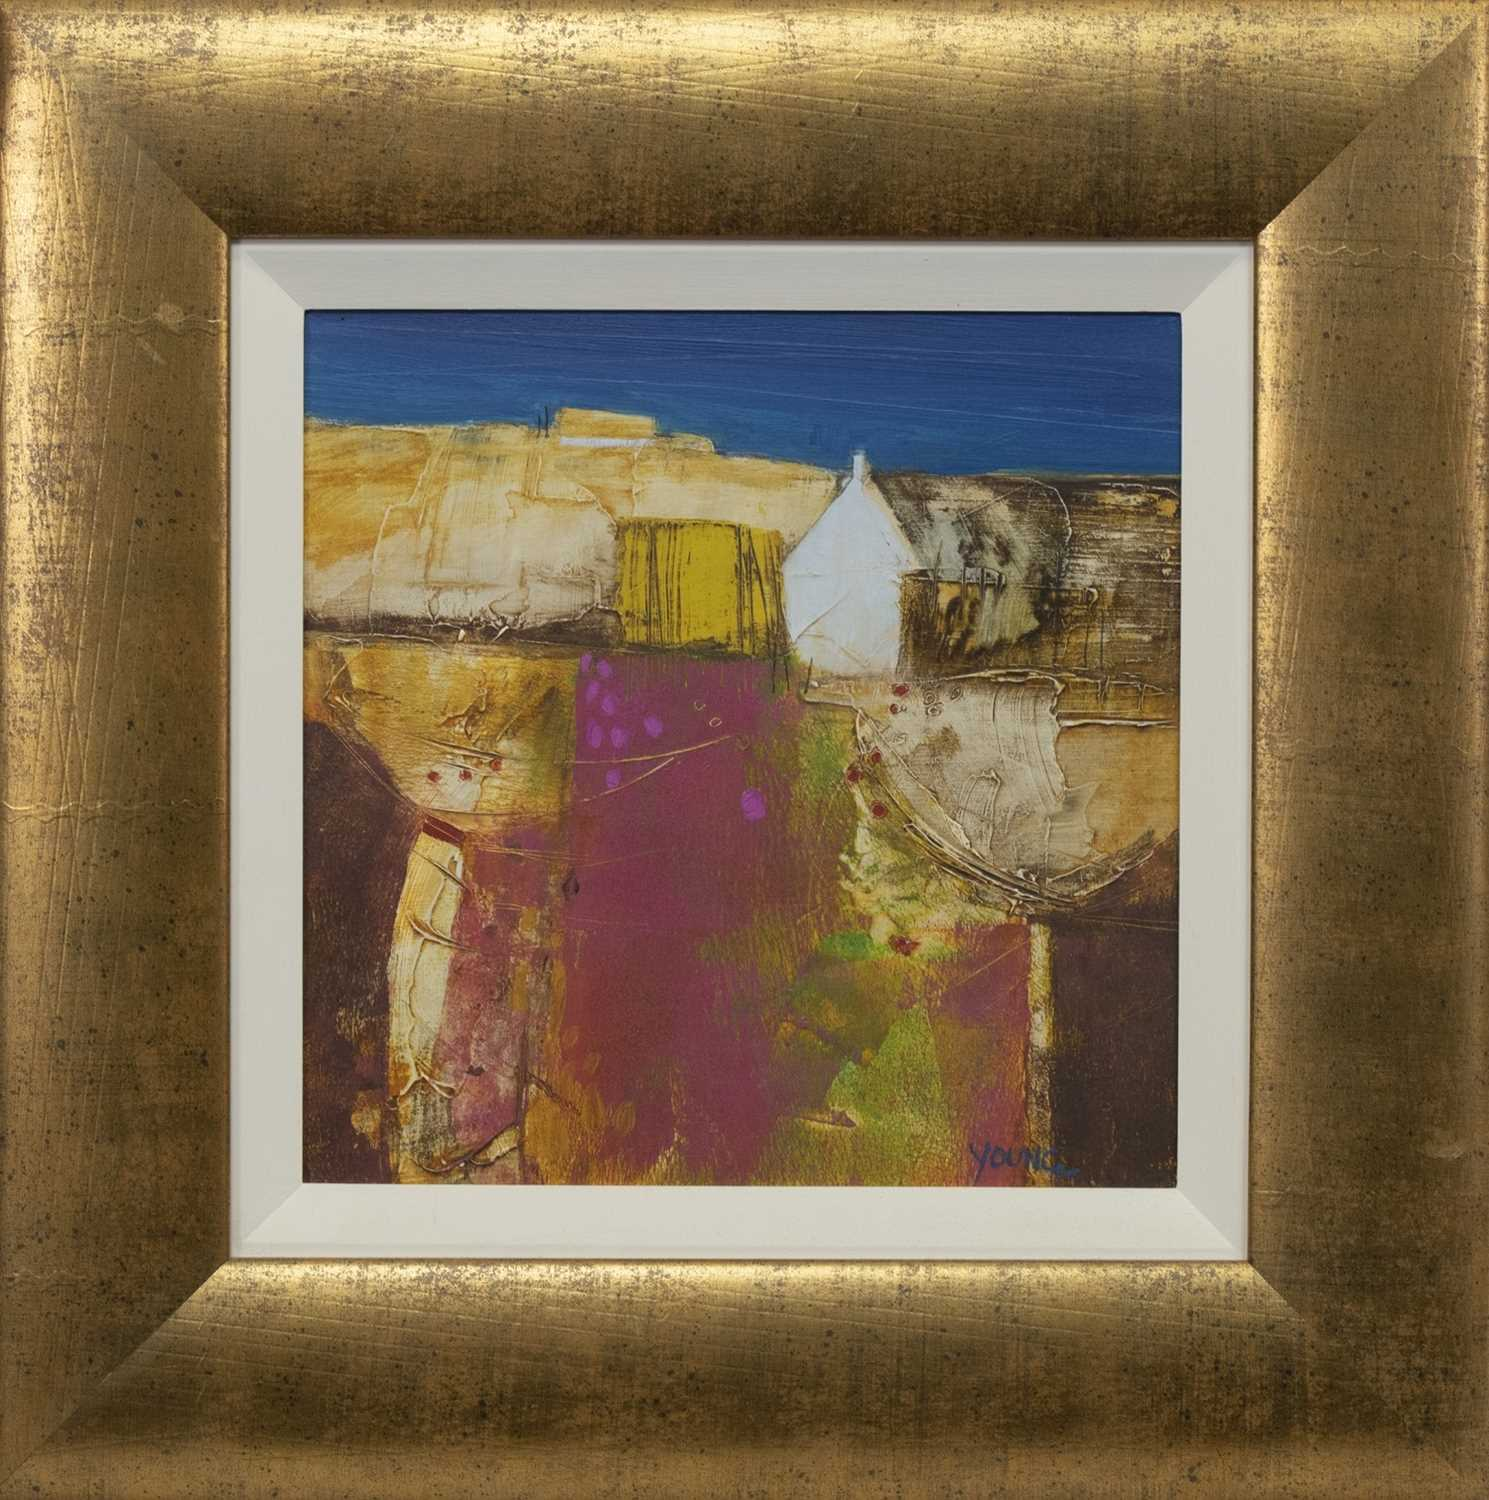 Lot 550 - CHEERY DAY, AN ACRYLIC BY GEORGIE YOUNG